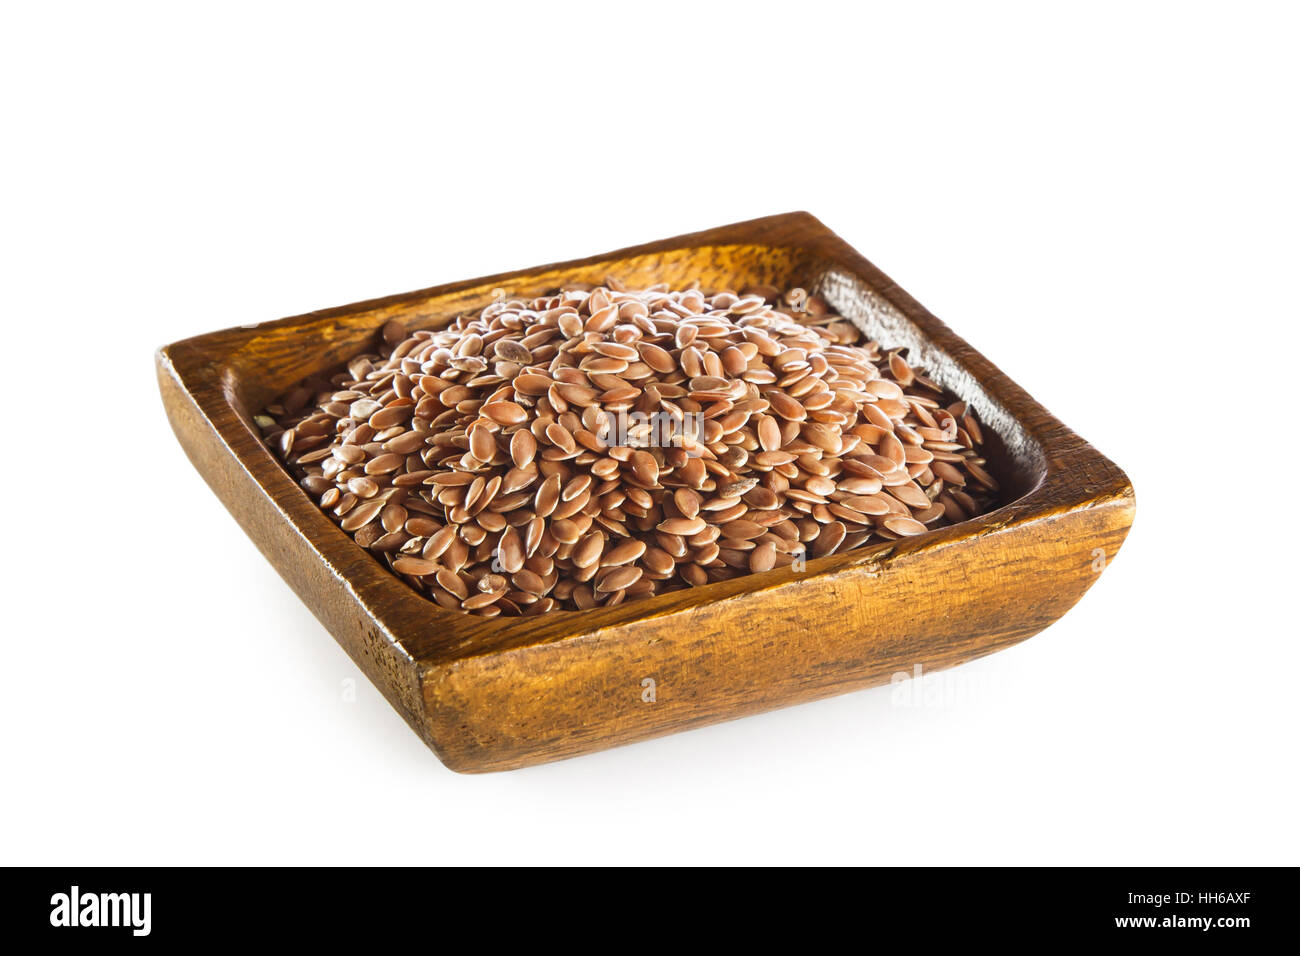 Linseed in wooden bowl isolated on white background - Stock Image